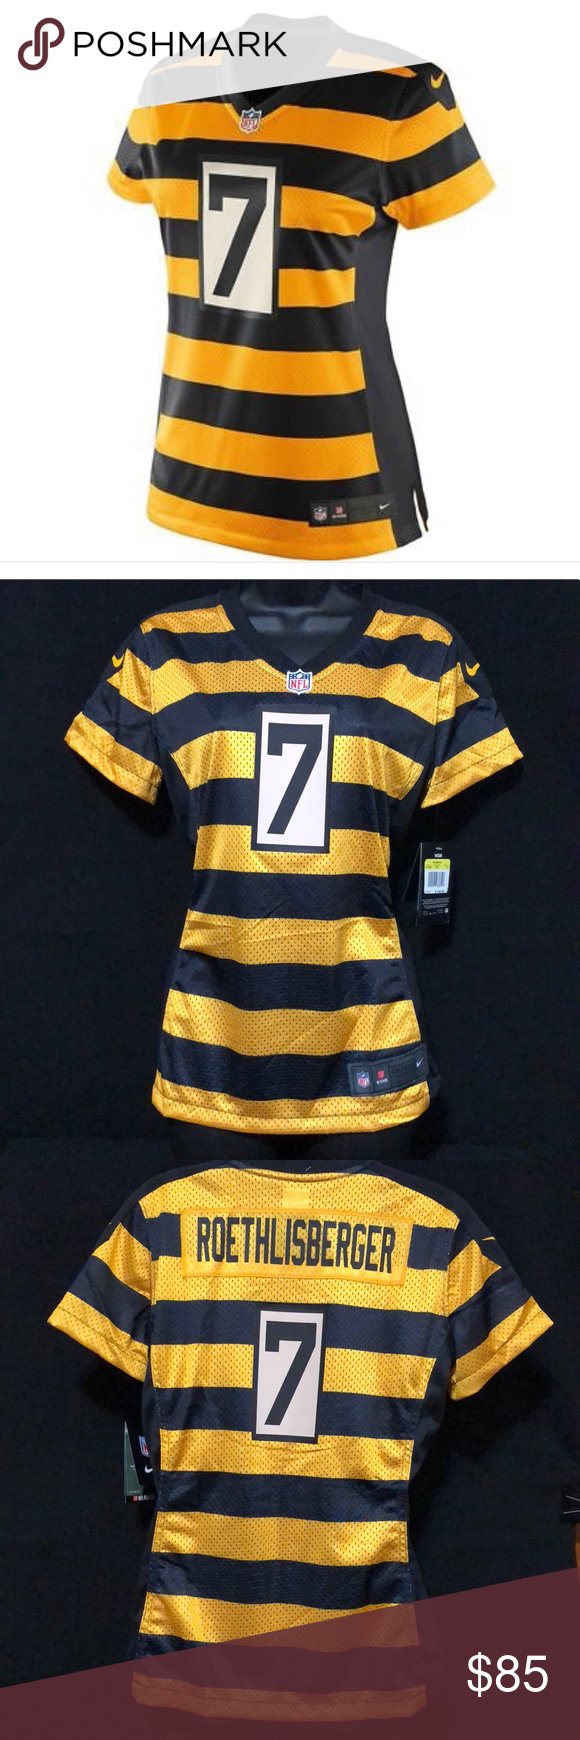 fcbab3e748a ... inexpensive nike pittsburgh steelers bumblebee jersey nwt ben  roethlisberger 7 v neck. 100 polyester nfl